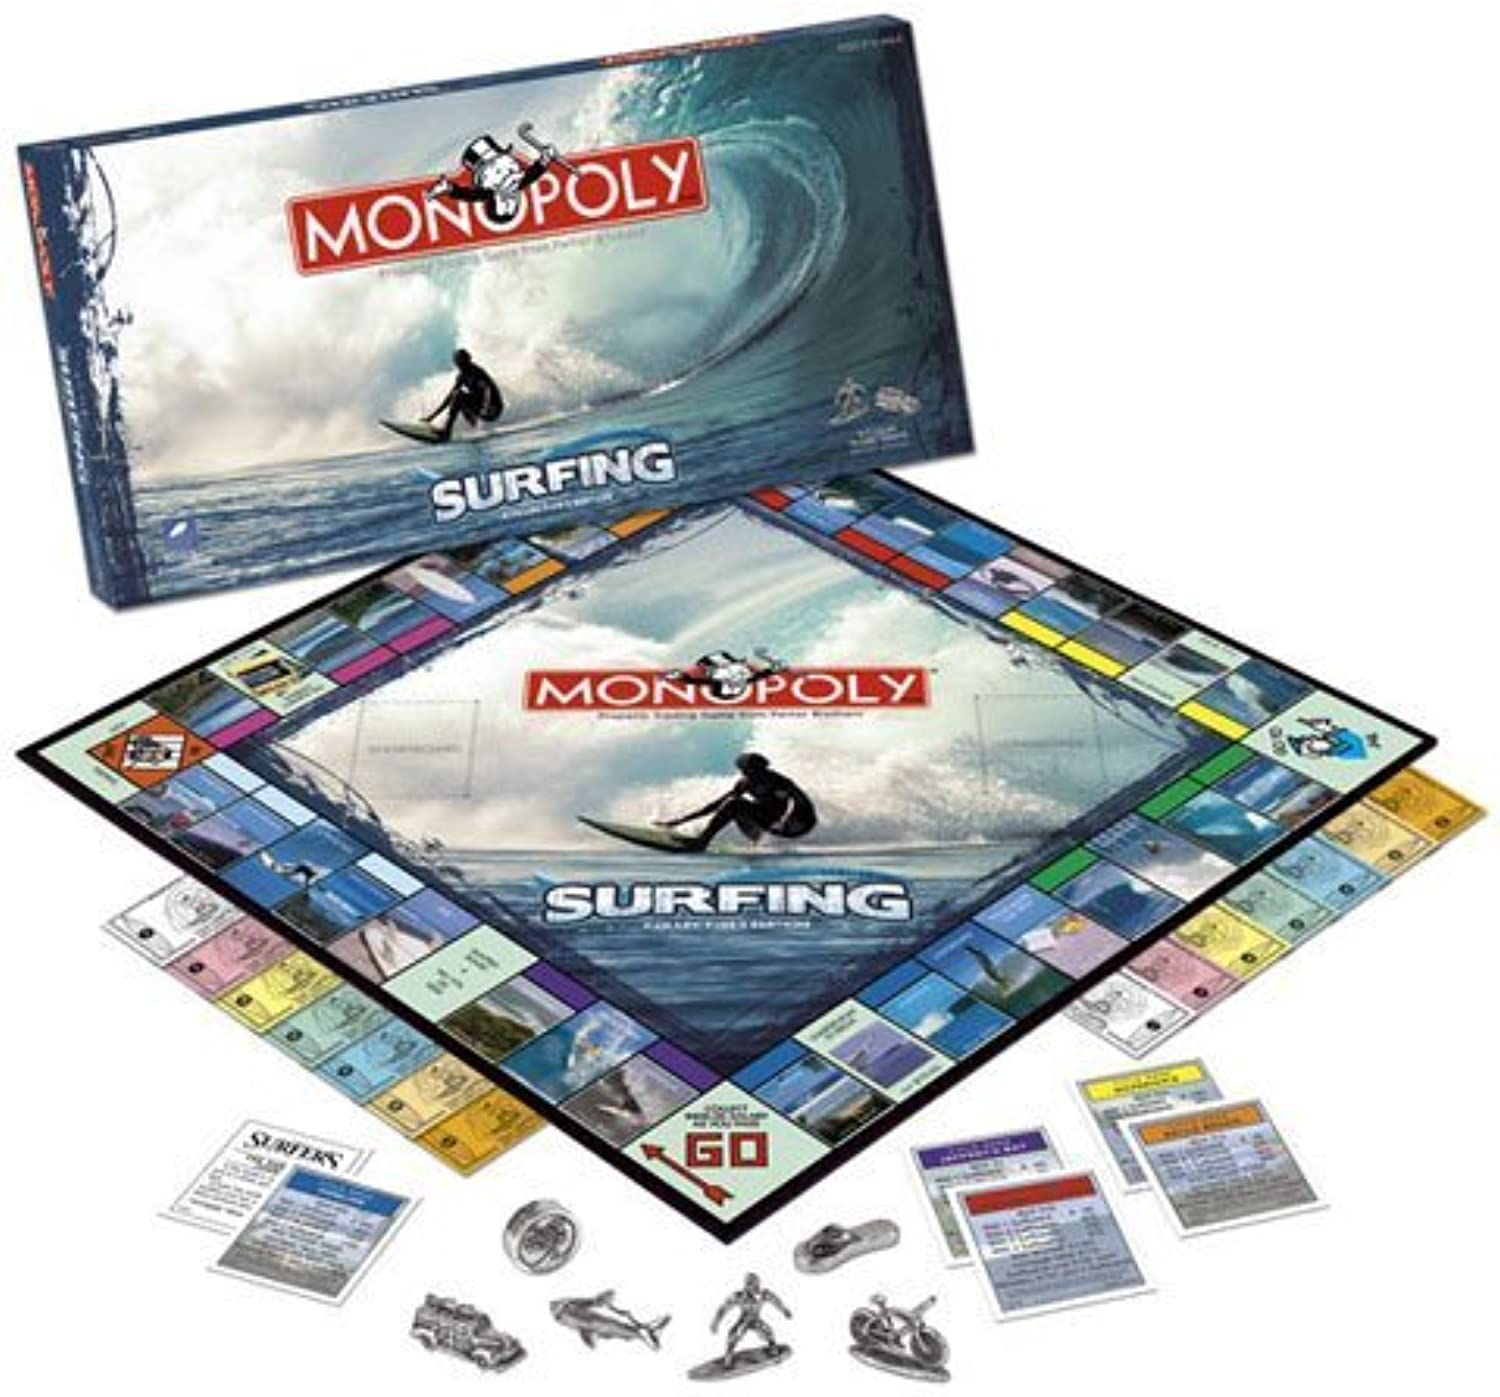 USAopoly Surfing 2008 Monopoly by USAopoly